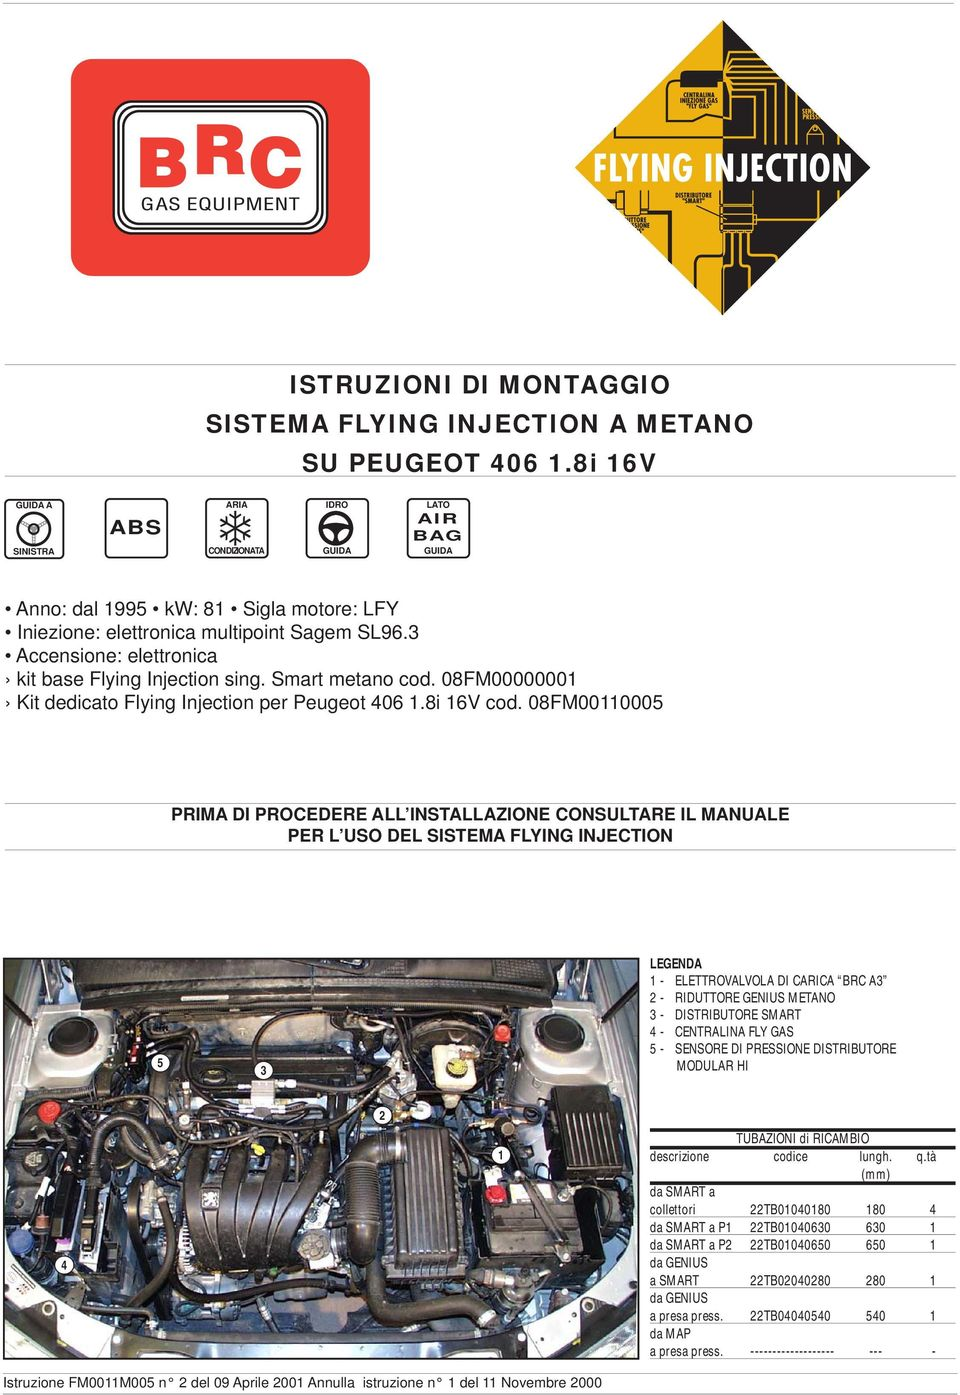 3 Accensione: elettronica kit base Flying Injection sing. Smart metano cod. 08FM00000001 Kit dedicato Flying Injection per Peugeot 406 1.8i 16V cod.